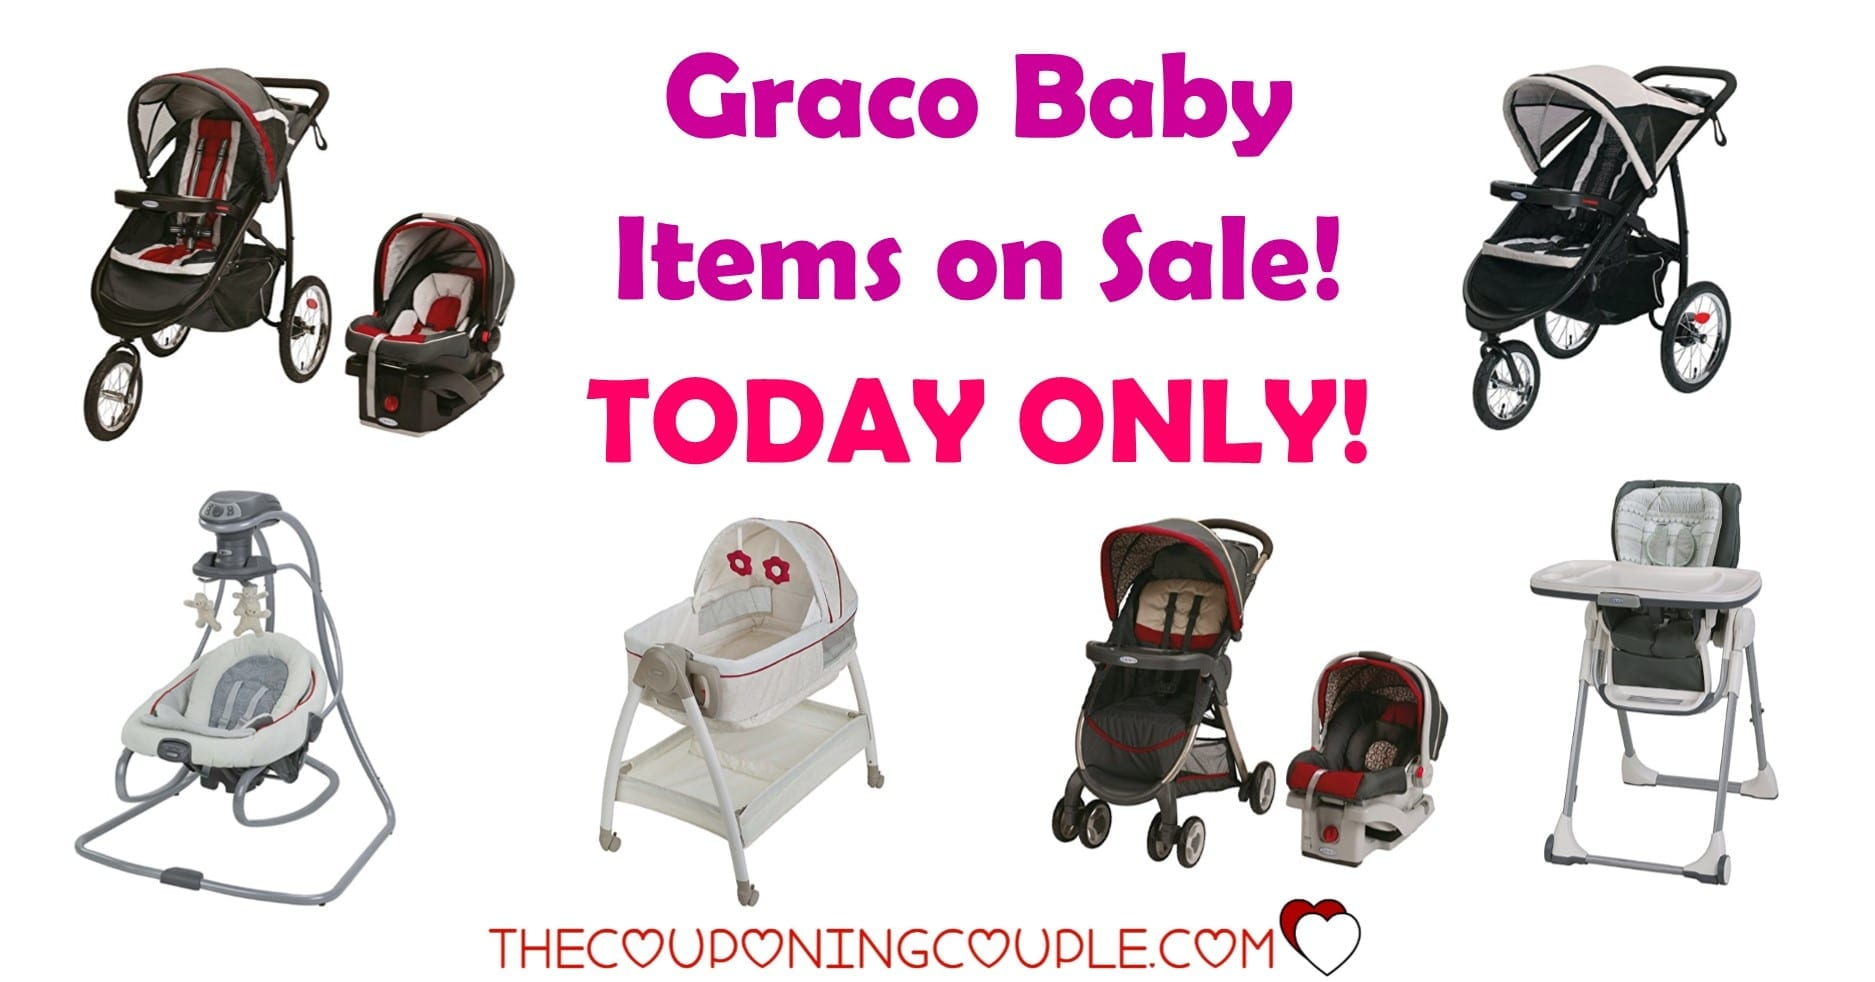 graco high chair coupon shower with arms baby items on sale today swings travel